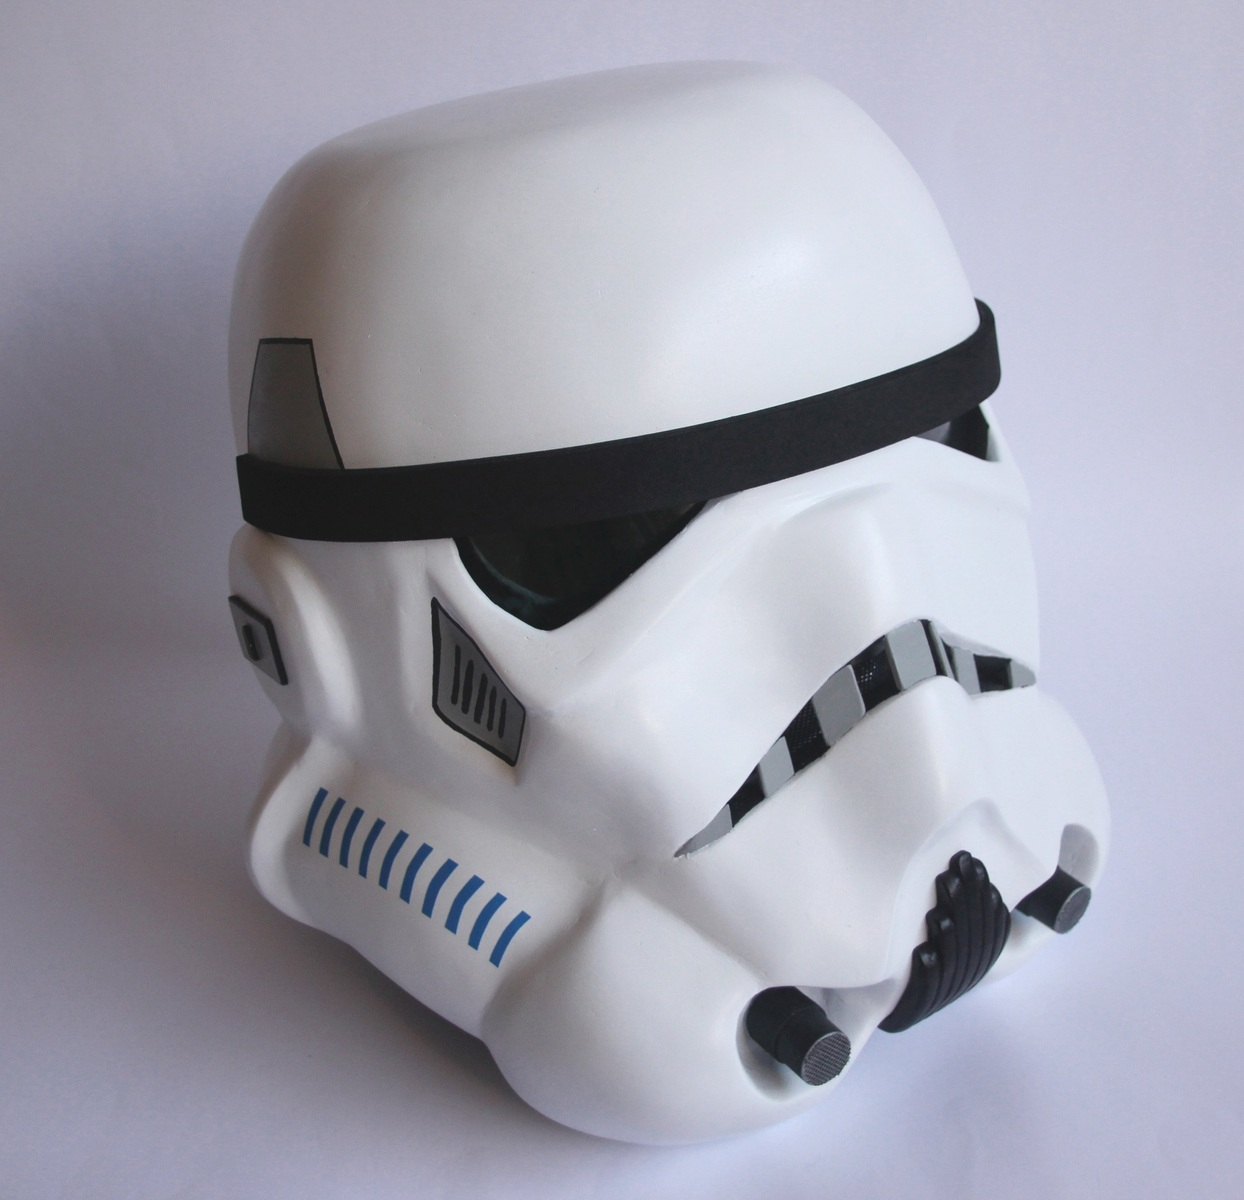 This Stormtrooper helmet was created in a wearable 1:1 scale using paper, fibreglass, Bondo, and various other household items. Working time was approximately 2 months.